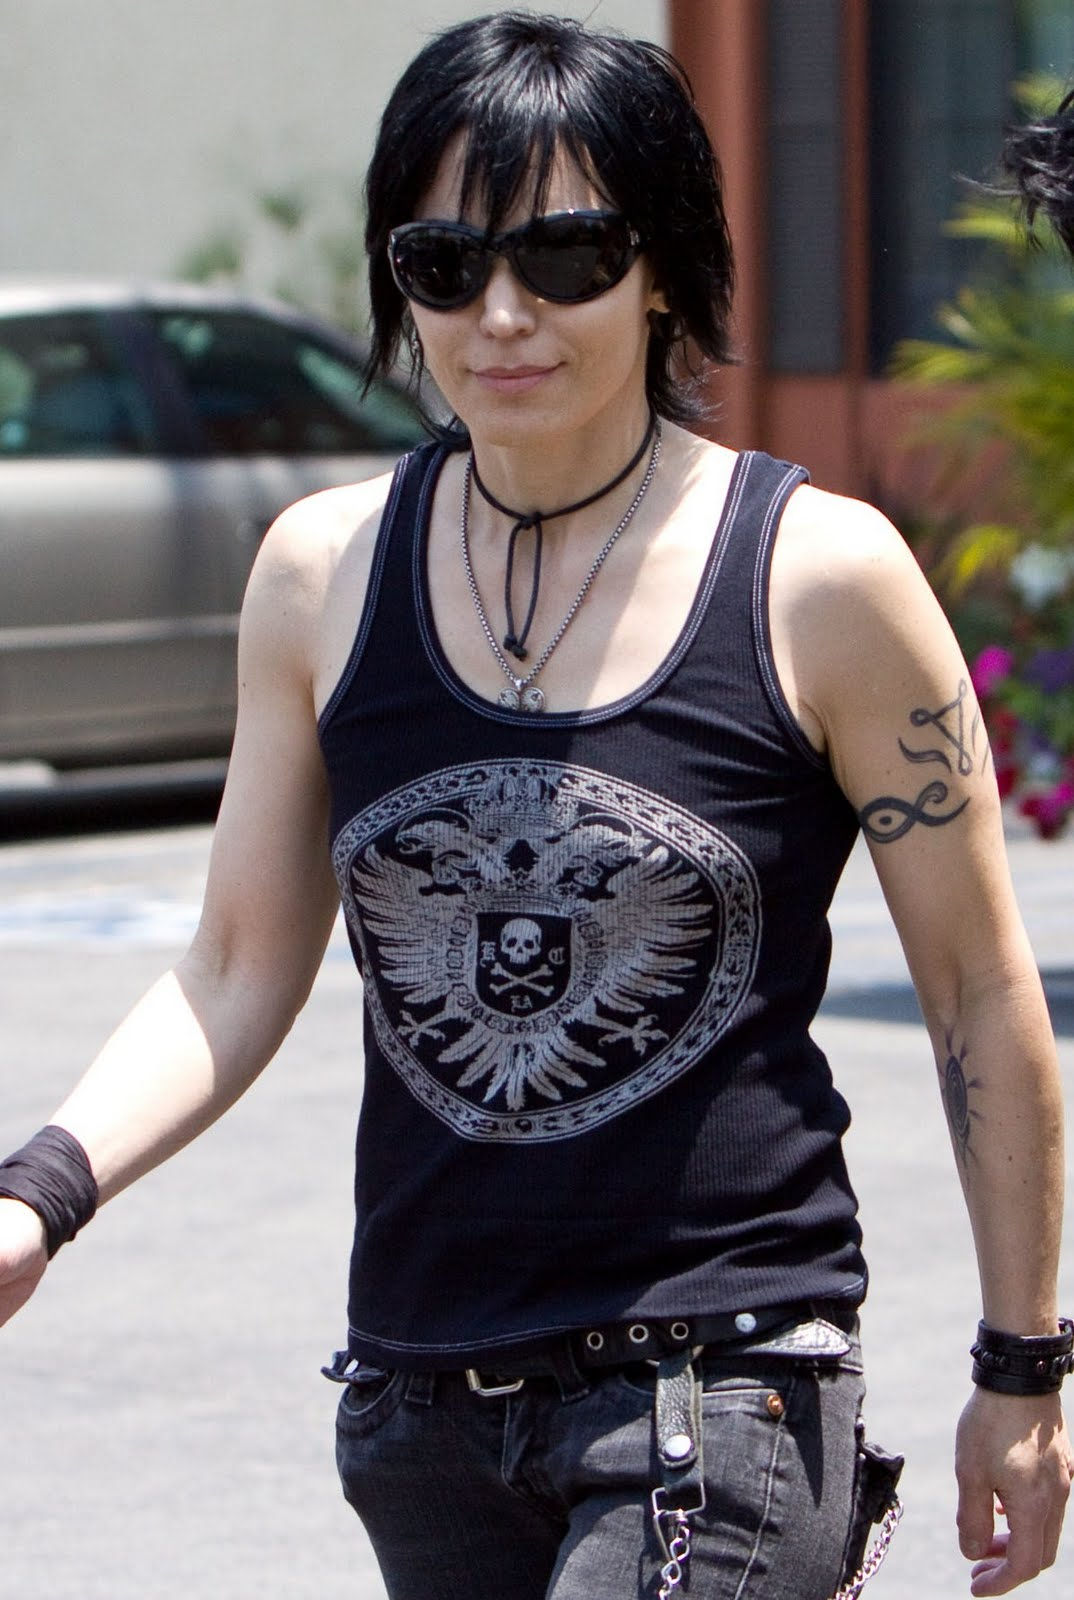 Joan Jett forearm tattoo photo